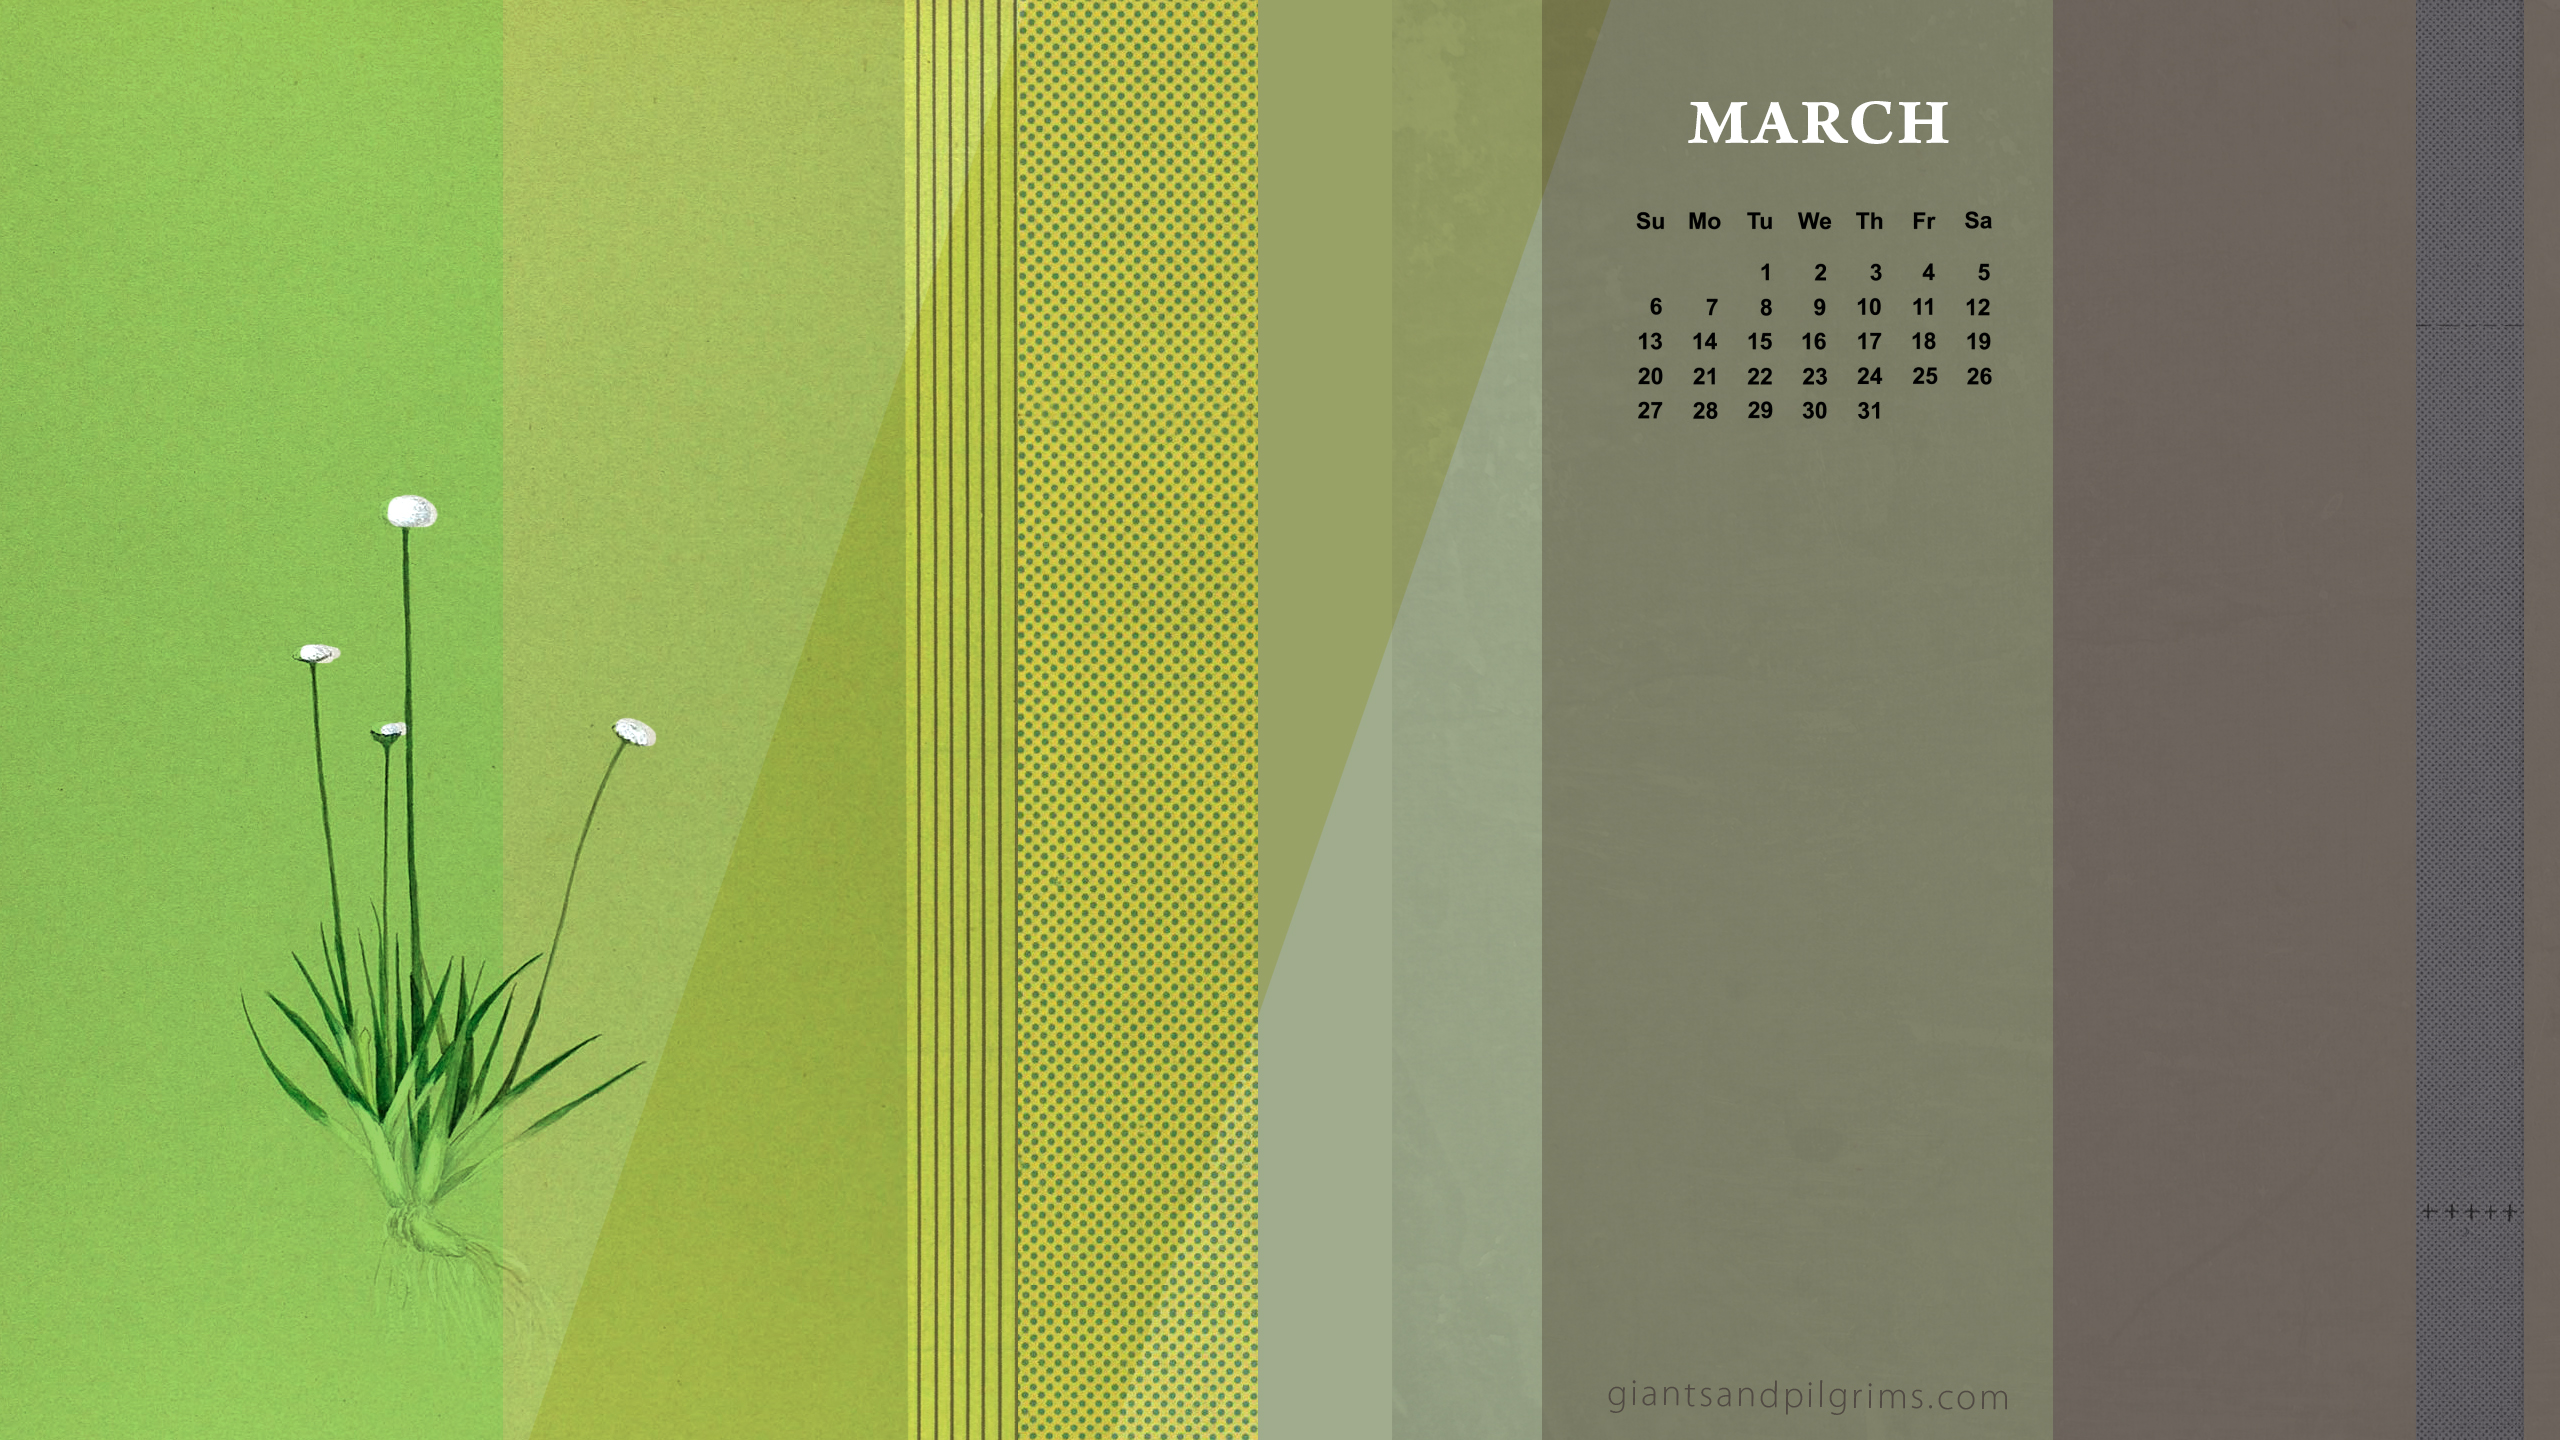 March Calendar Desktop and iPhone Wallpaper Giants Pilgrims 2560x1440